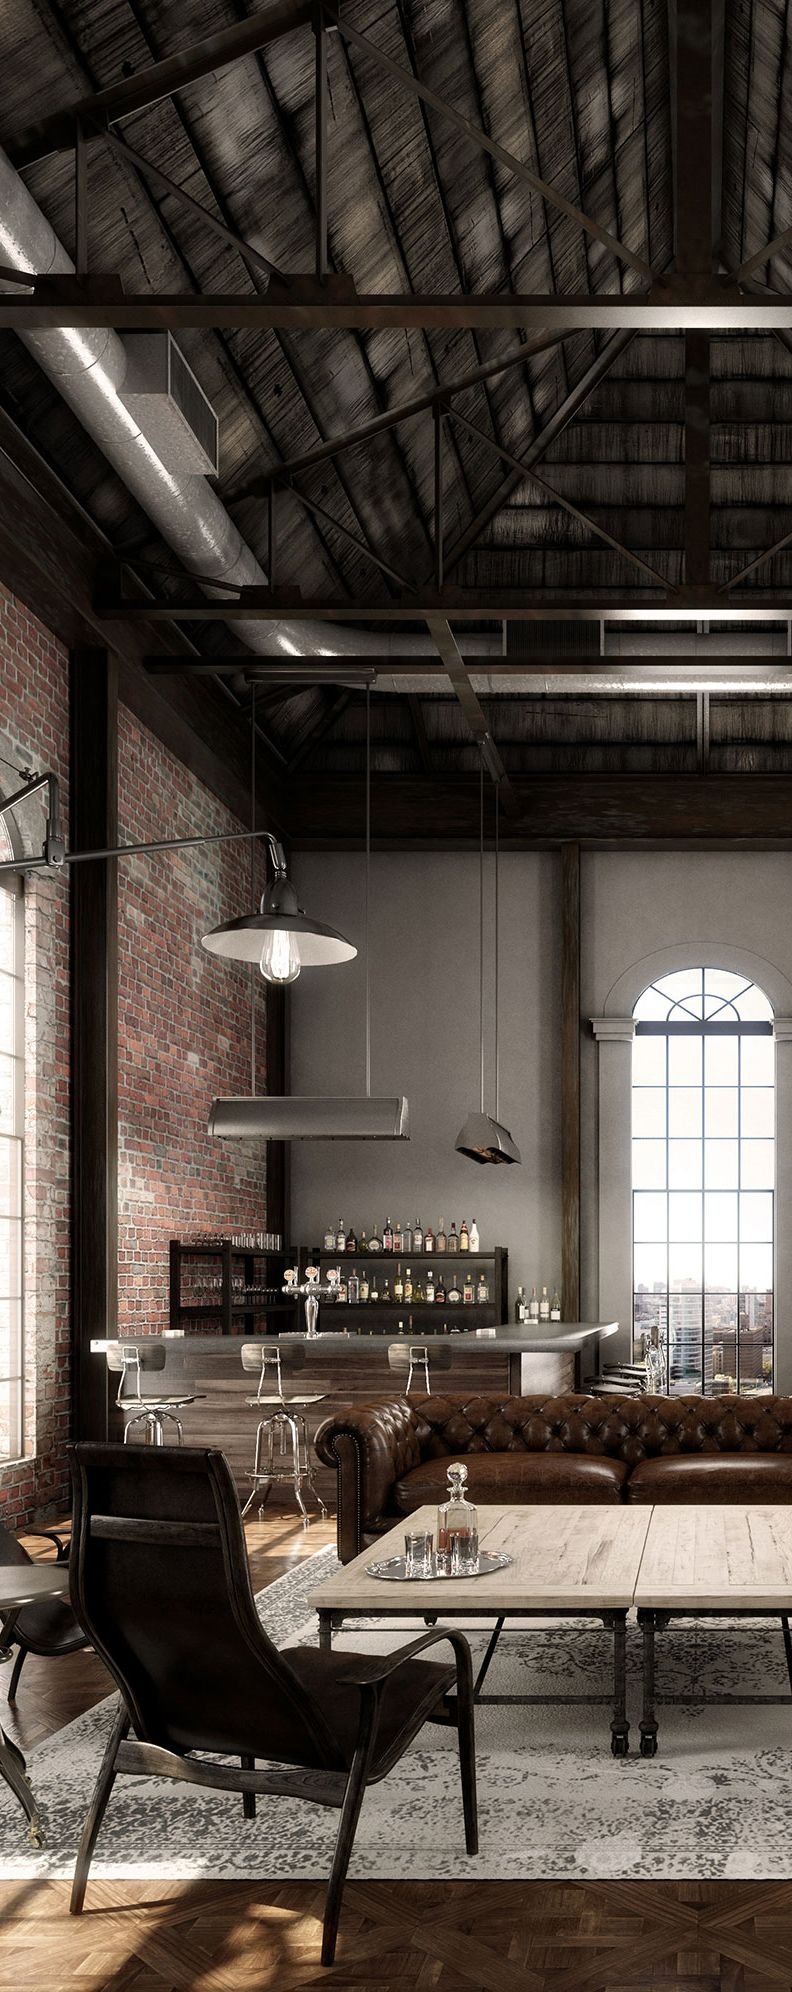 Bilid29 Breathtaking Industrial Loft Interior Design Today 2021 02 10 Download Here